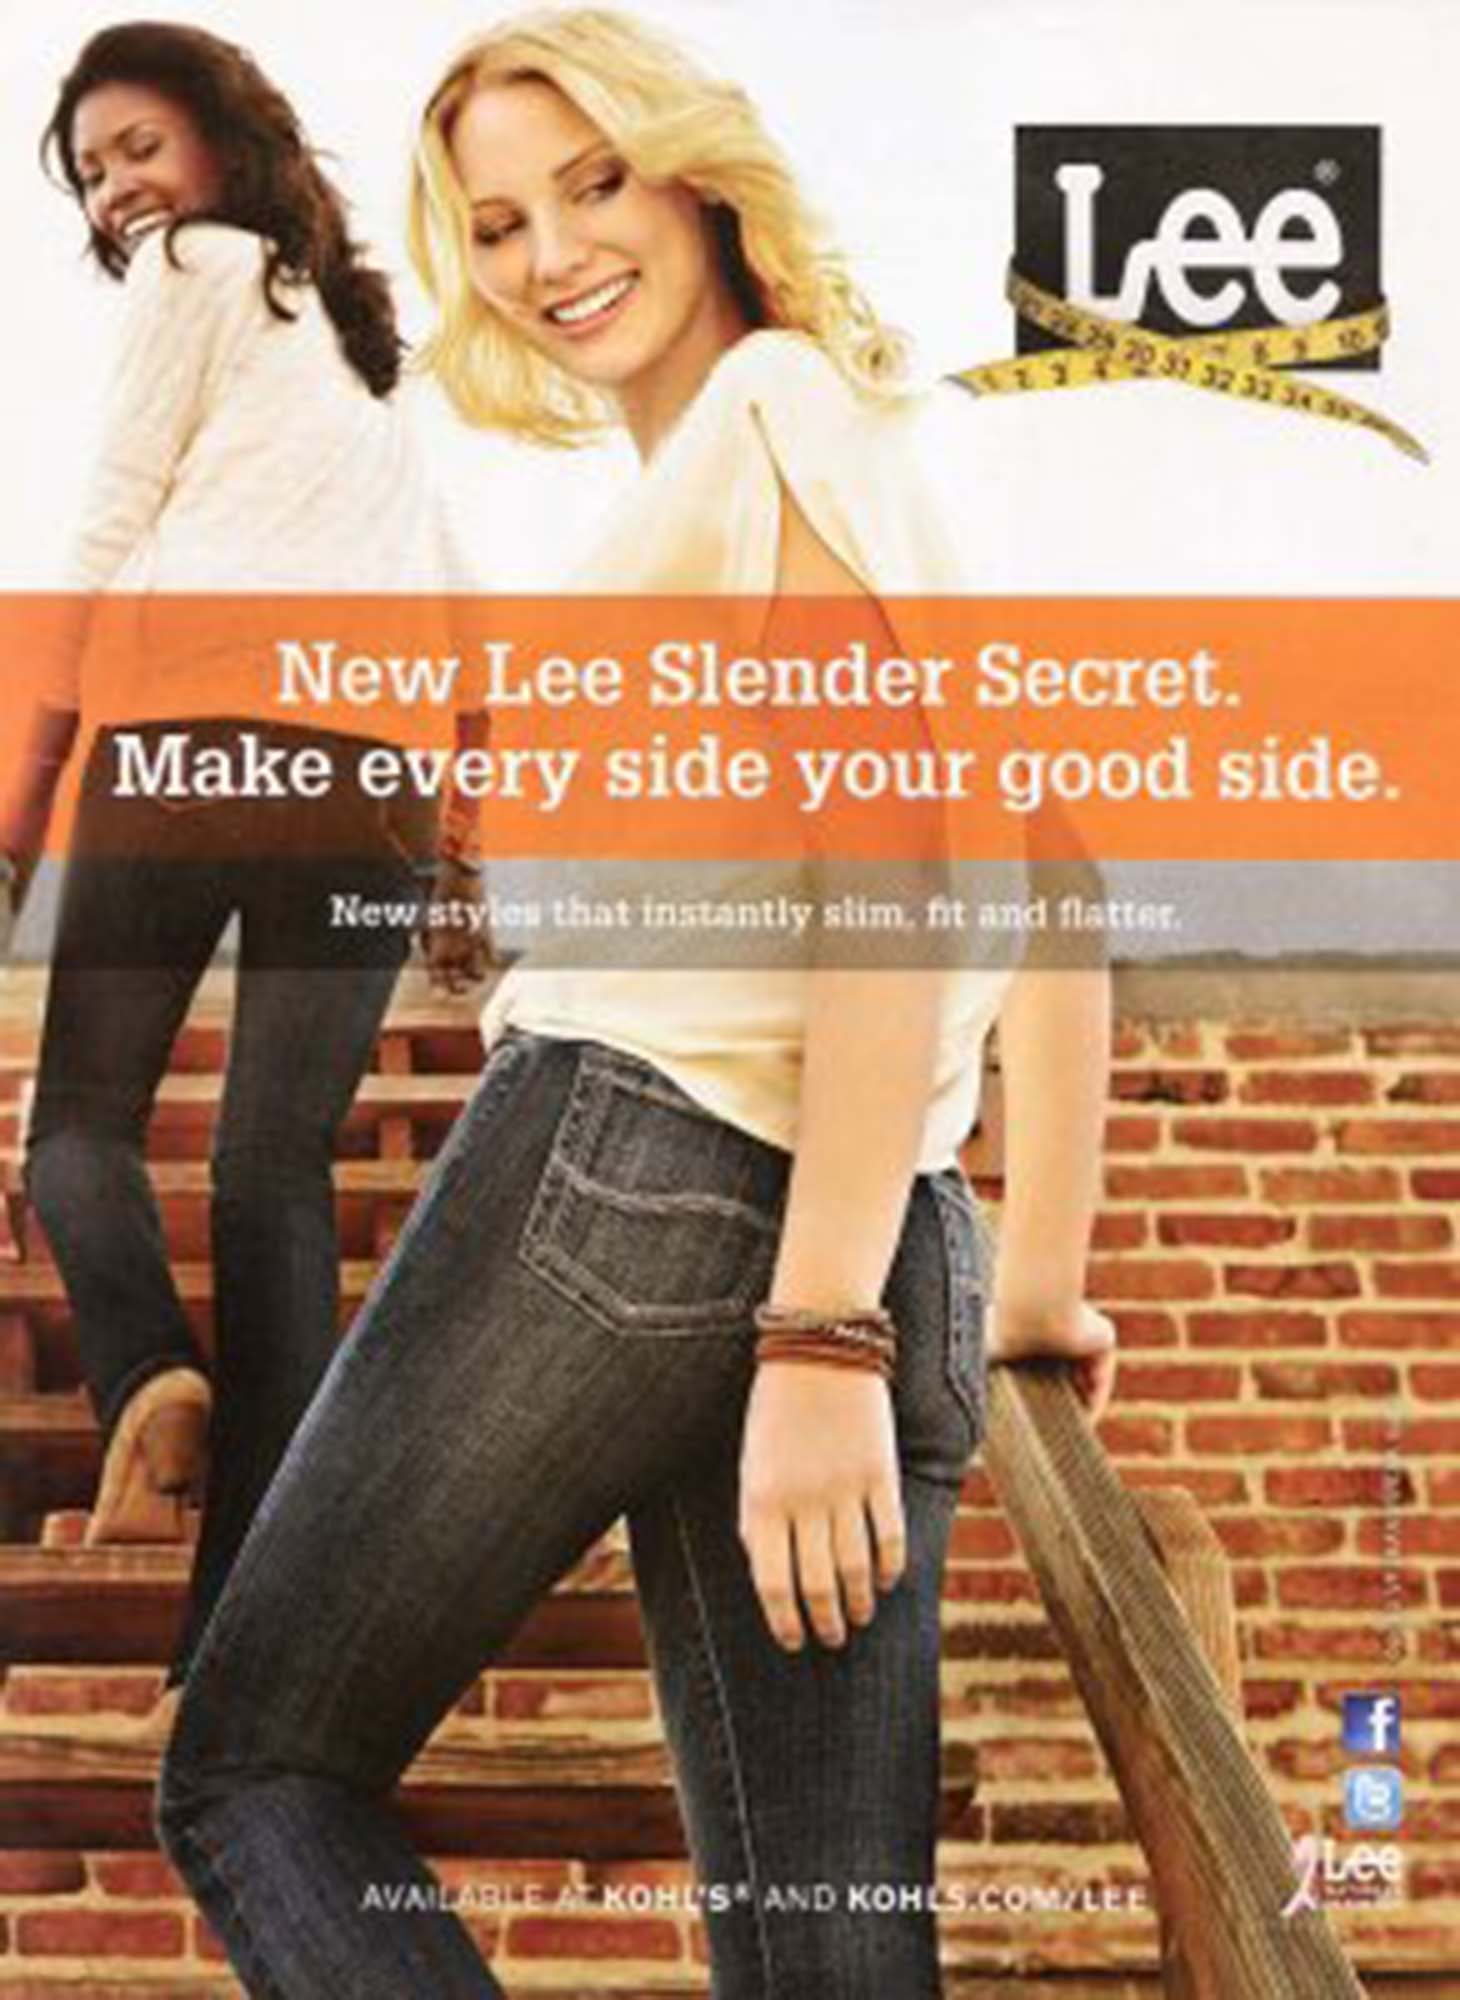 Woman wearing new slender Lee jeans